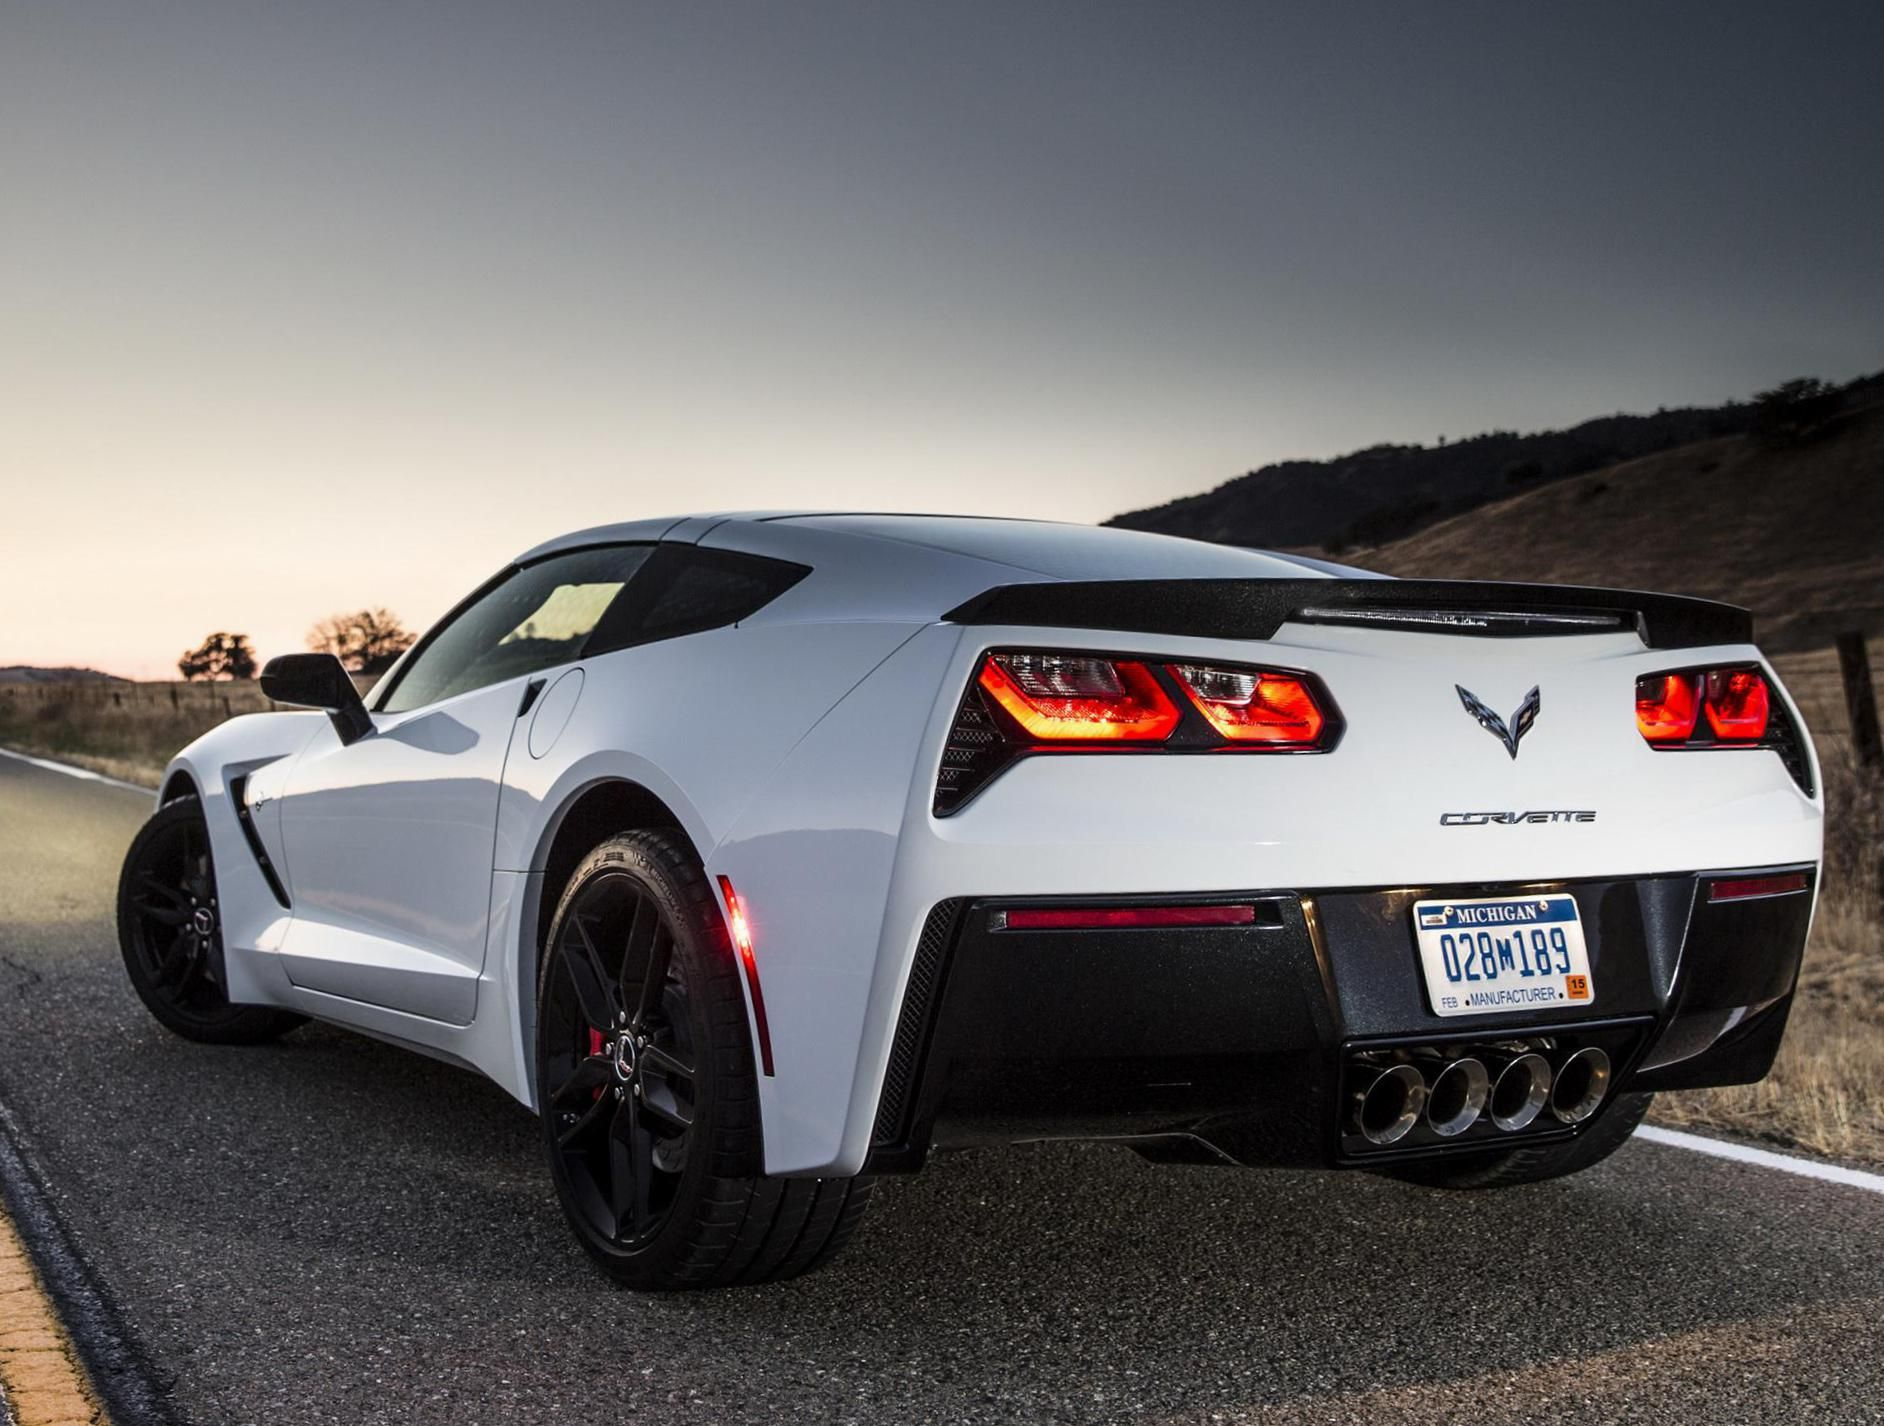 Chevrolet Corvette Stingray Coupe concept